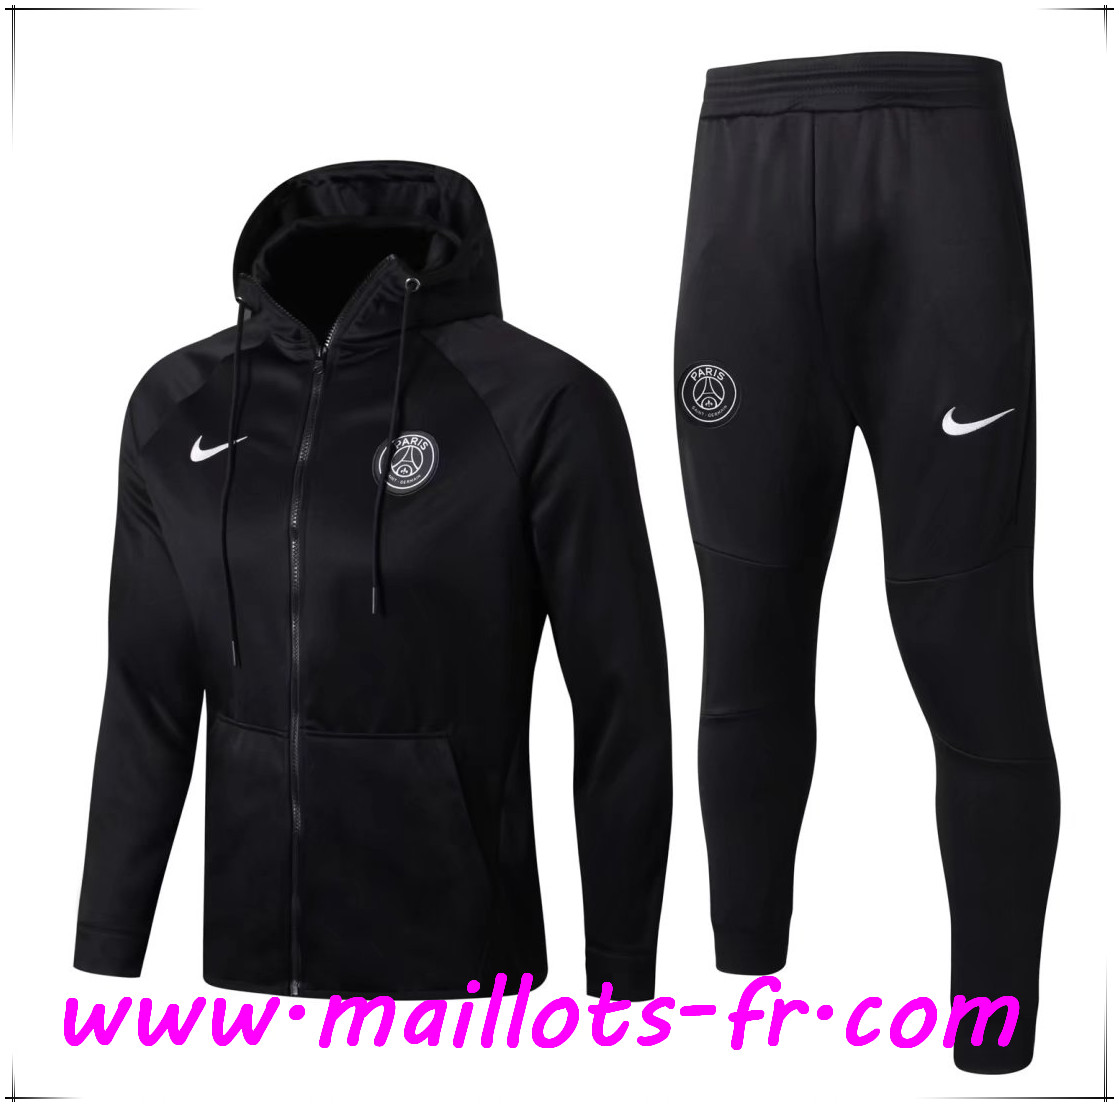 Maillots-fr Thailande Sweat a Capuche Survetement Foot PSG Noir 2017/2018 Ensemble